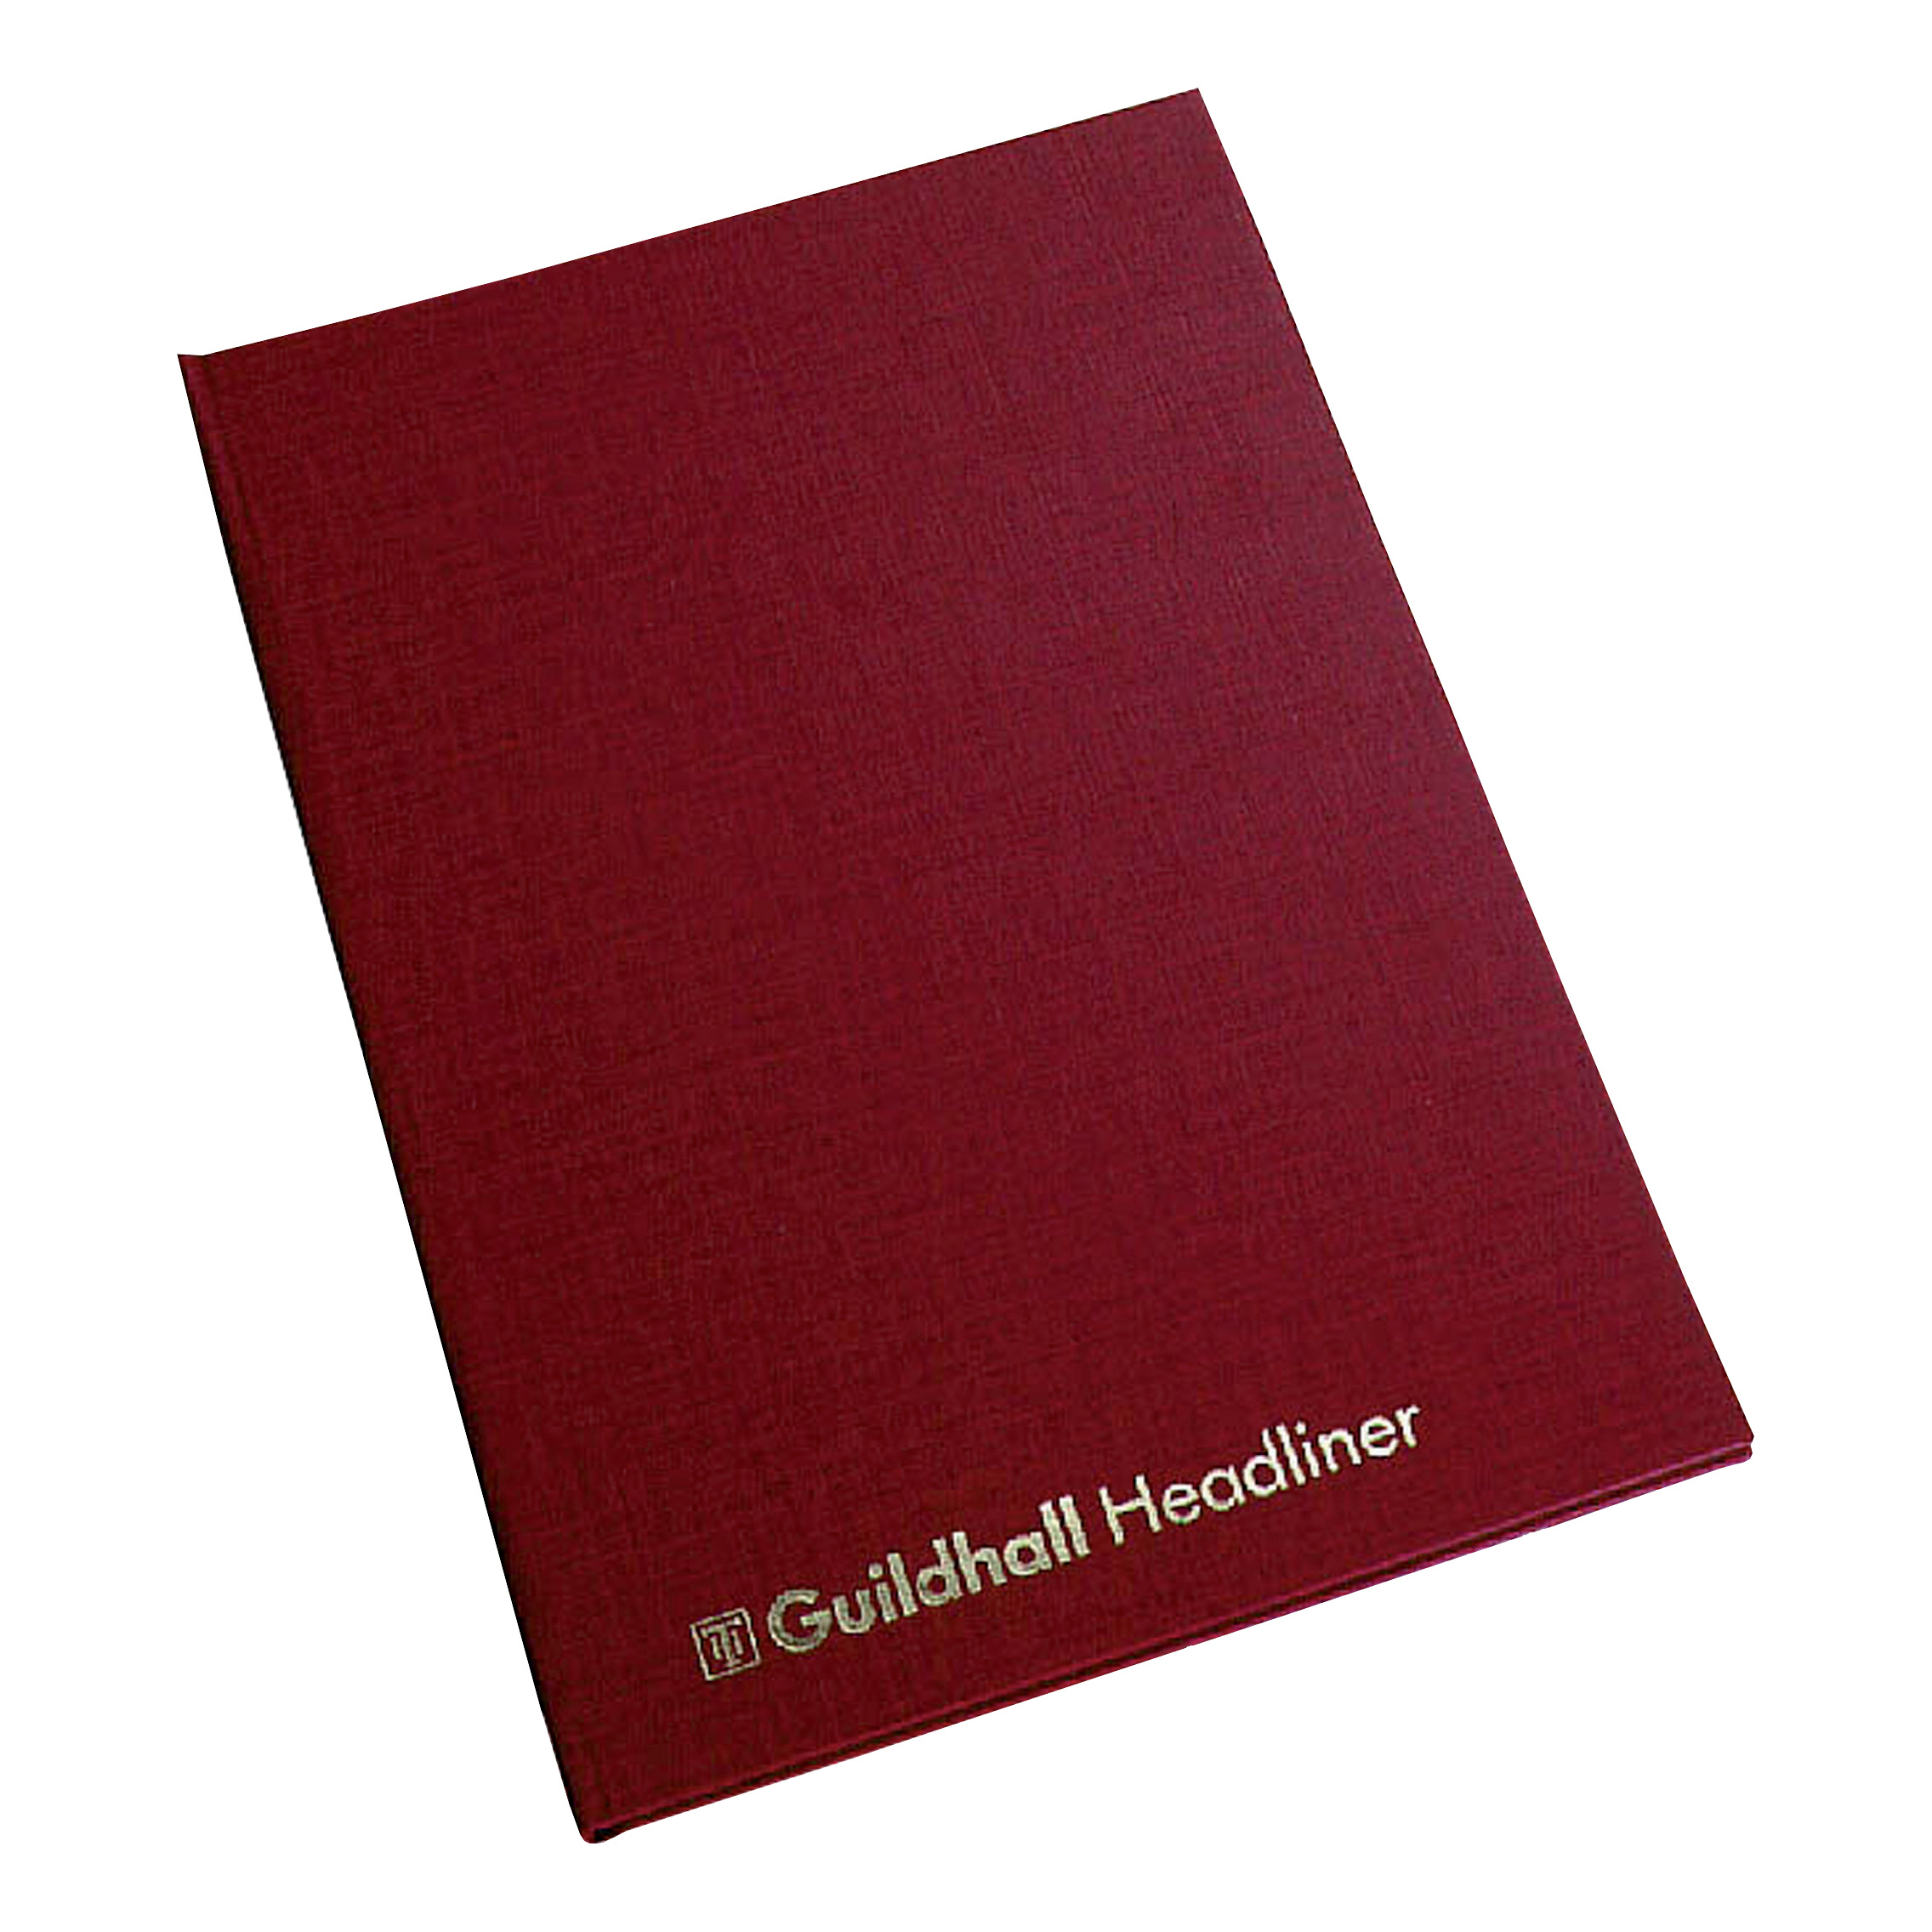 Accounts Binders & Refills Guildhall Headliner Account Book 38 Series 16 Cash Column 80 Pages 298x203mm Ref 38/16Z